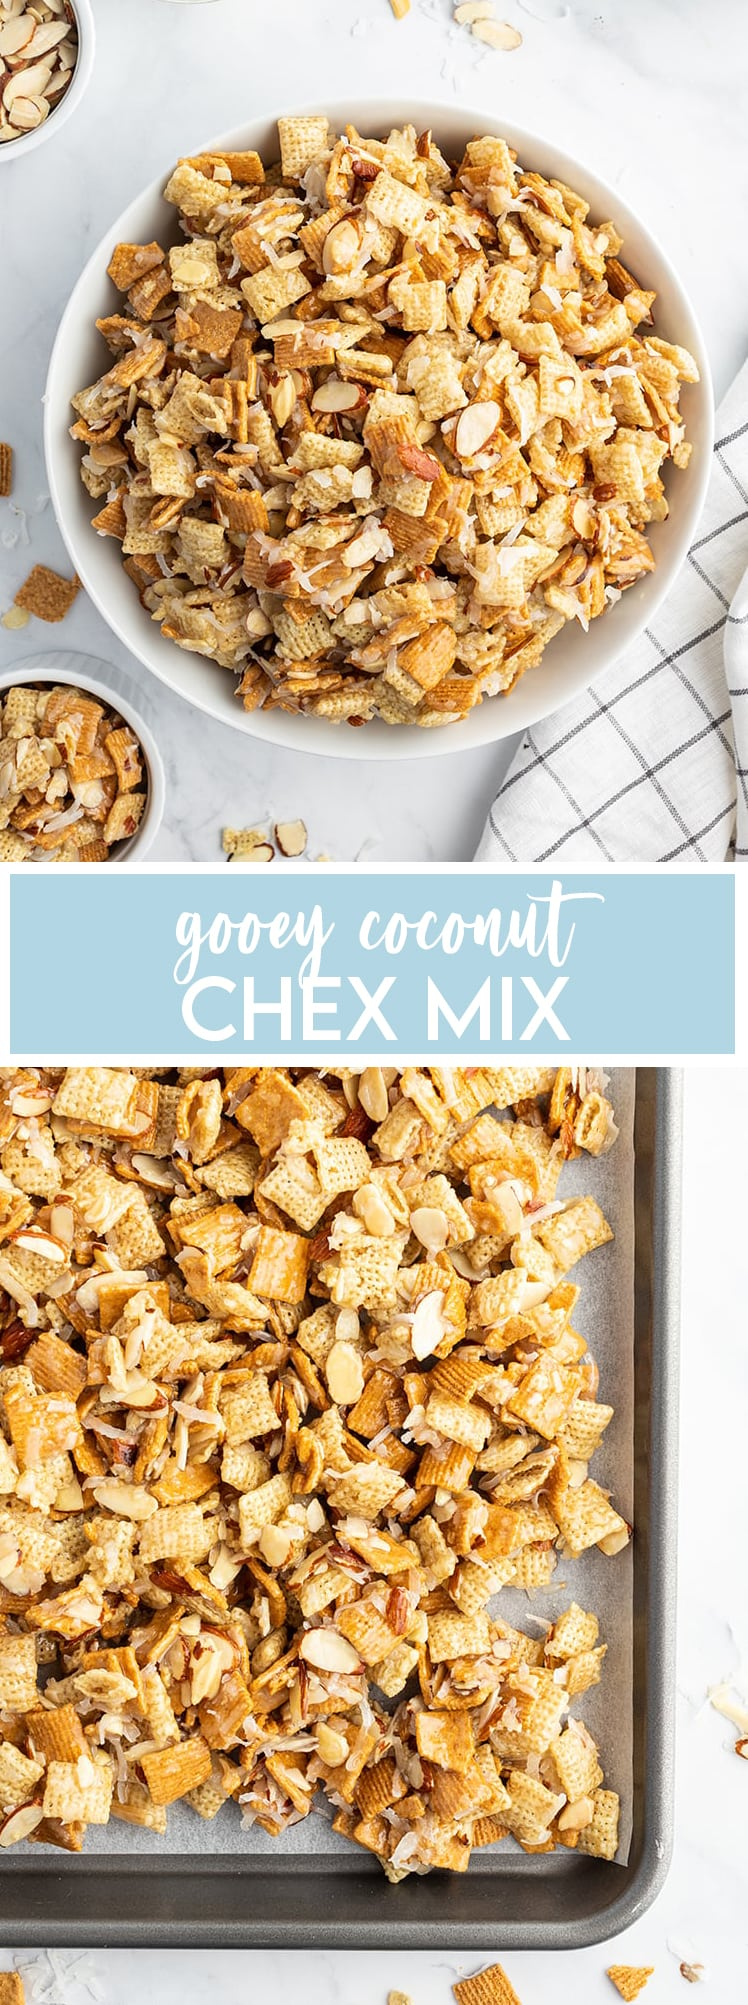 A large bowl of coconut chex mix, that is full of chex, golden grahams, sliced almonds, and shredded coconut, with a text below it for pinterest that says Gooey Coconut Chex Mix. Then another photo of a close up of gooey chex mix full of chex, sliced almonds, and golden grahams on a baking sheet.